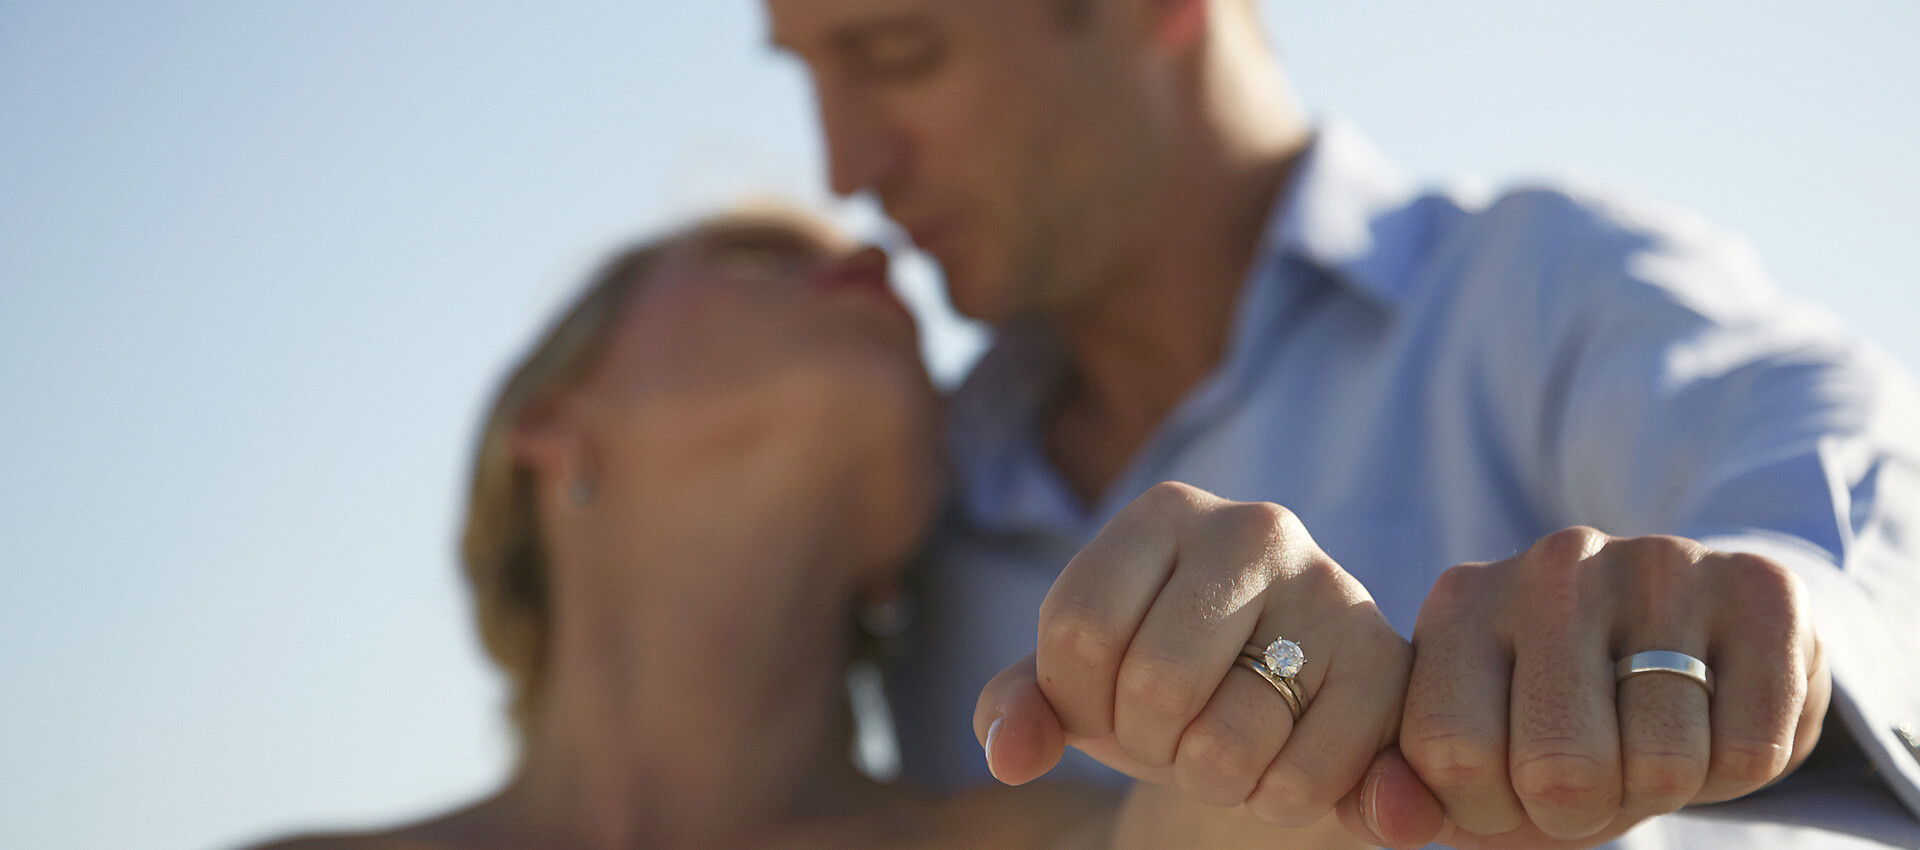 A bride and groom showing their rings while kissing.